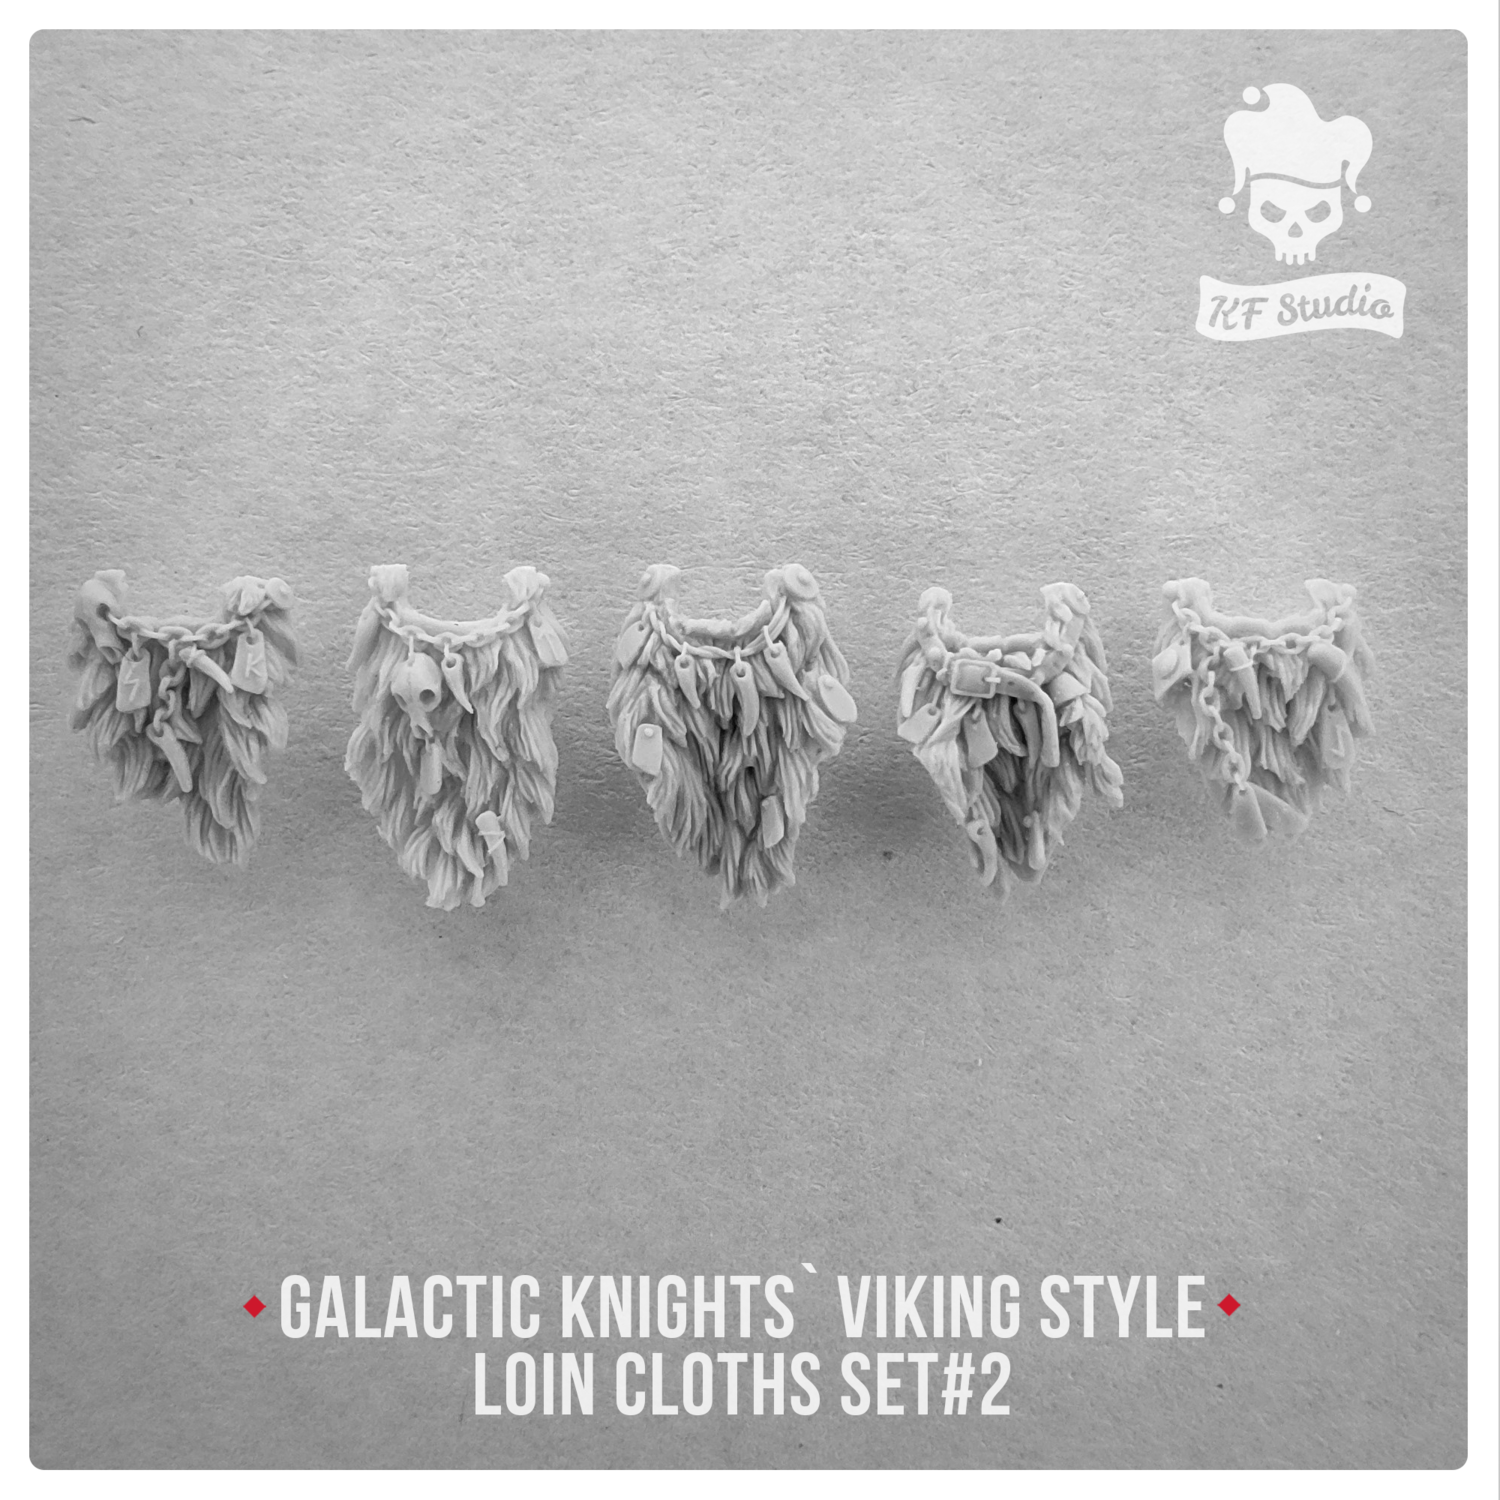 Galactic Knights Viking Style Loin cloths Set#2 by KFStudio